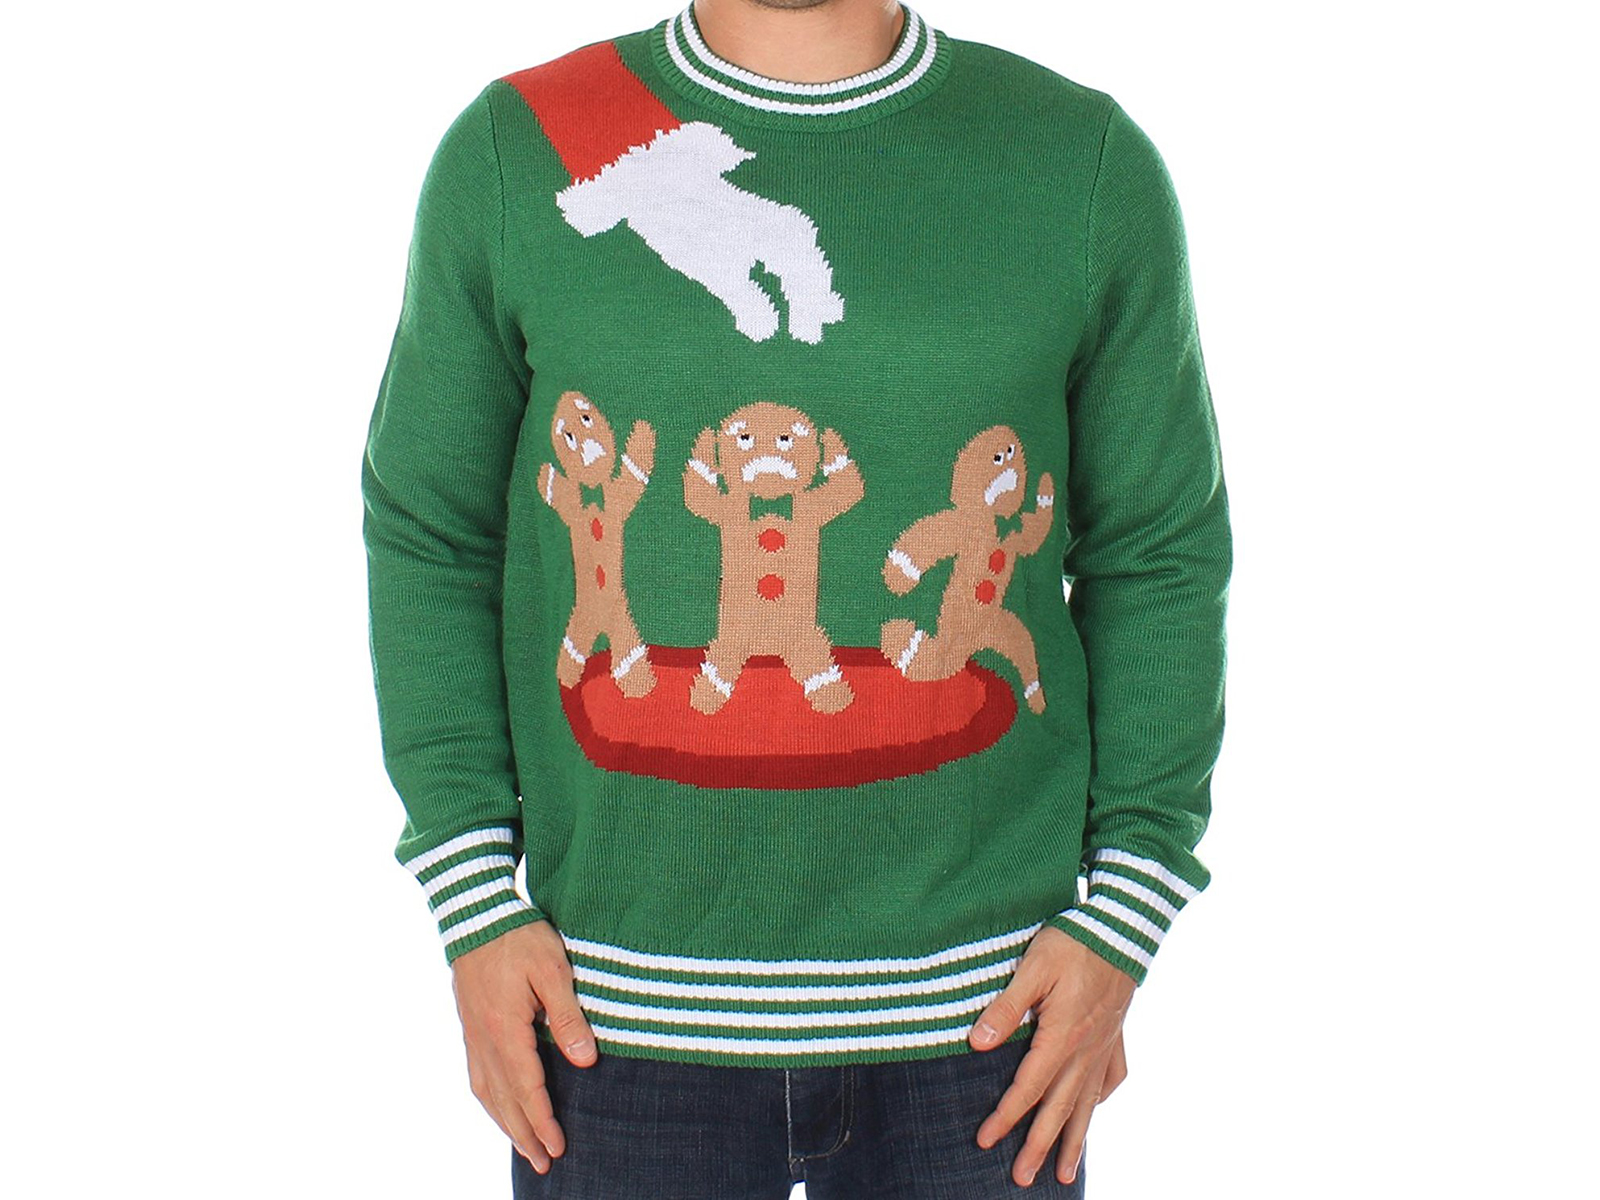 Gingerbread Nightmare Ugly Christmas Sweater by Tipsy Elves